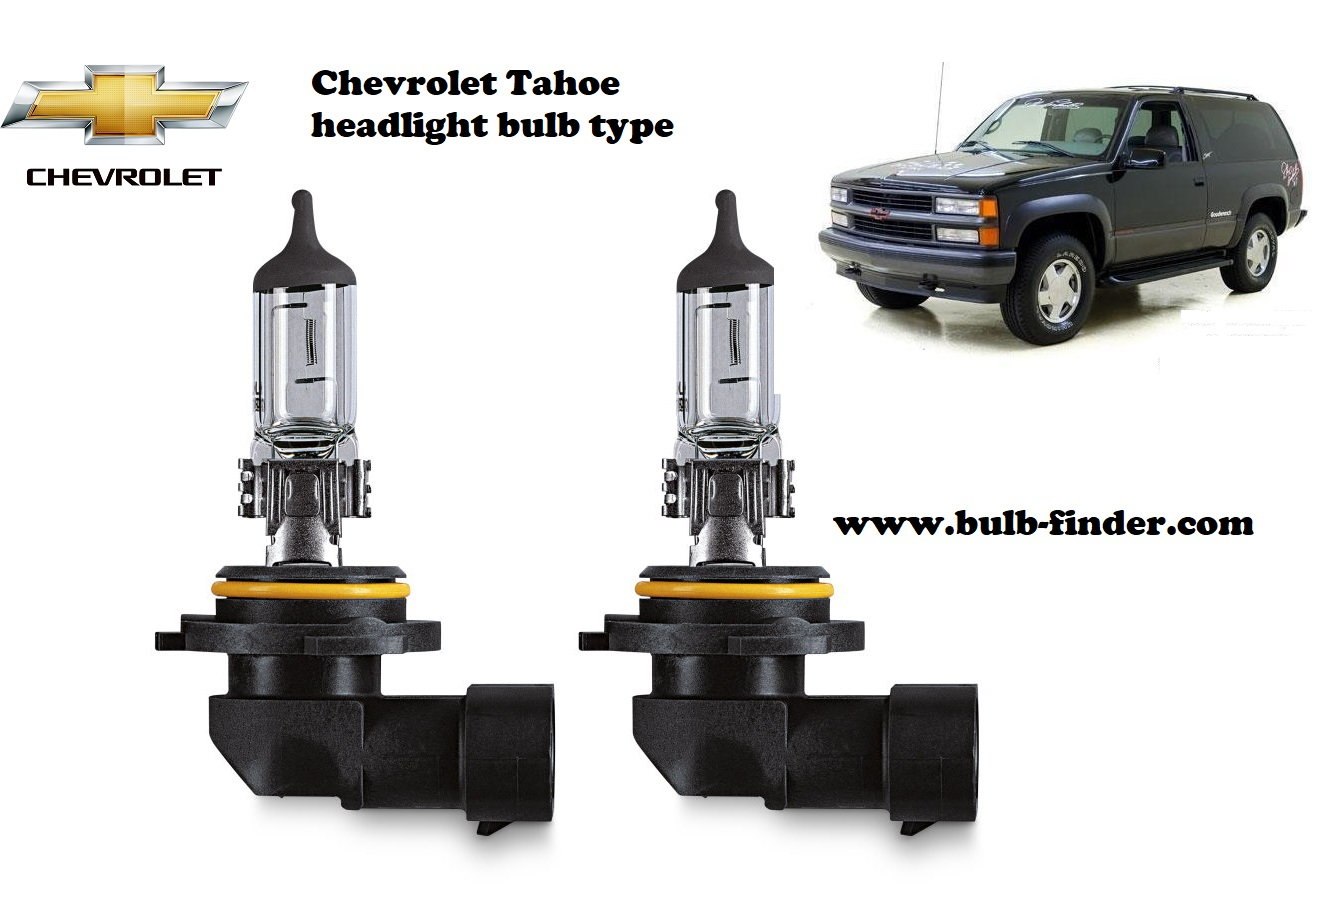 Chevrolet Tahoe headlamp bulb specification